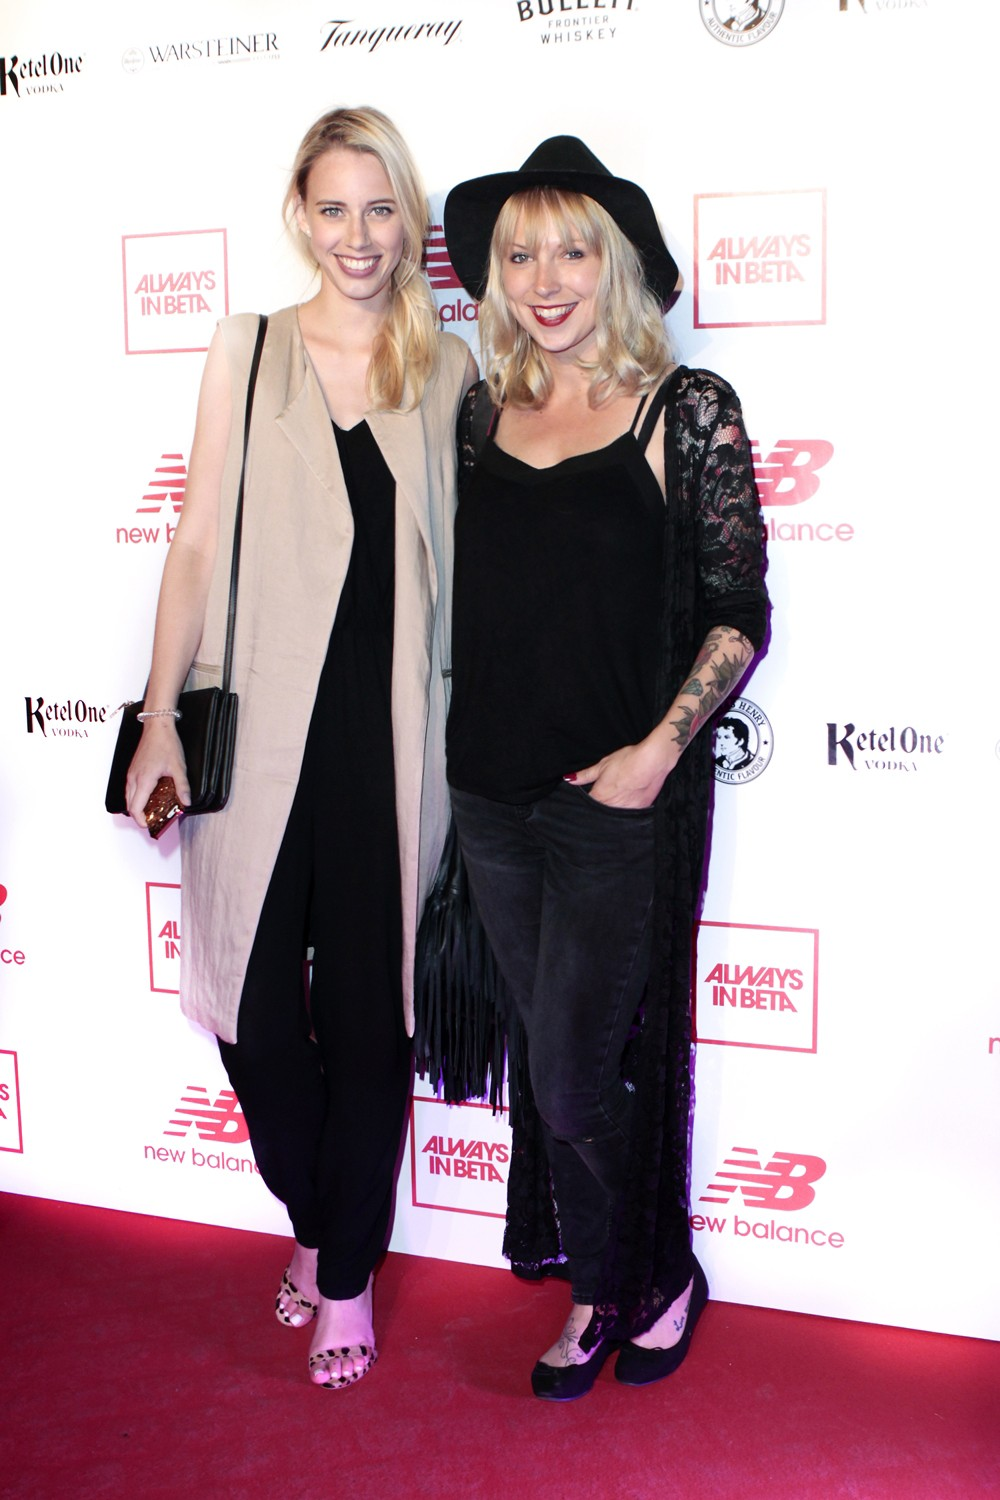 New Balance Party Red Carpet